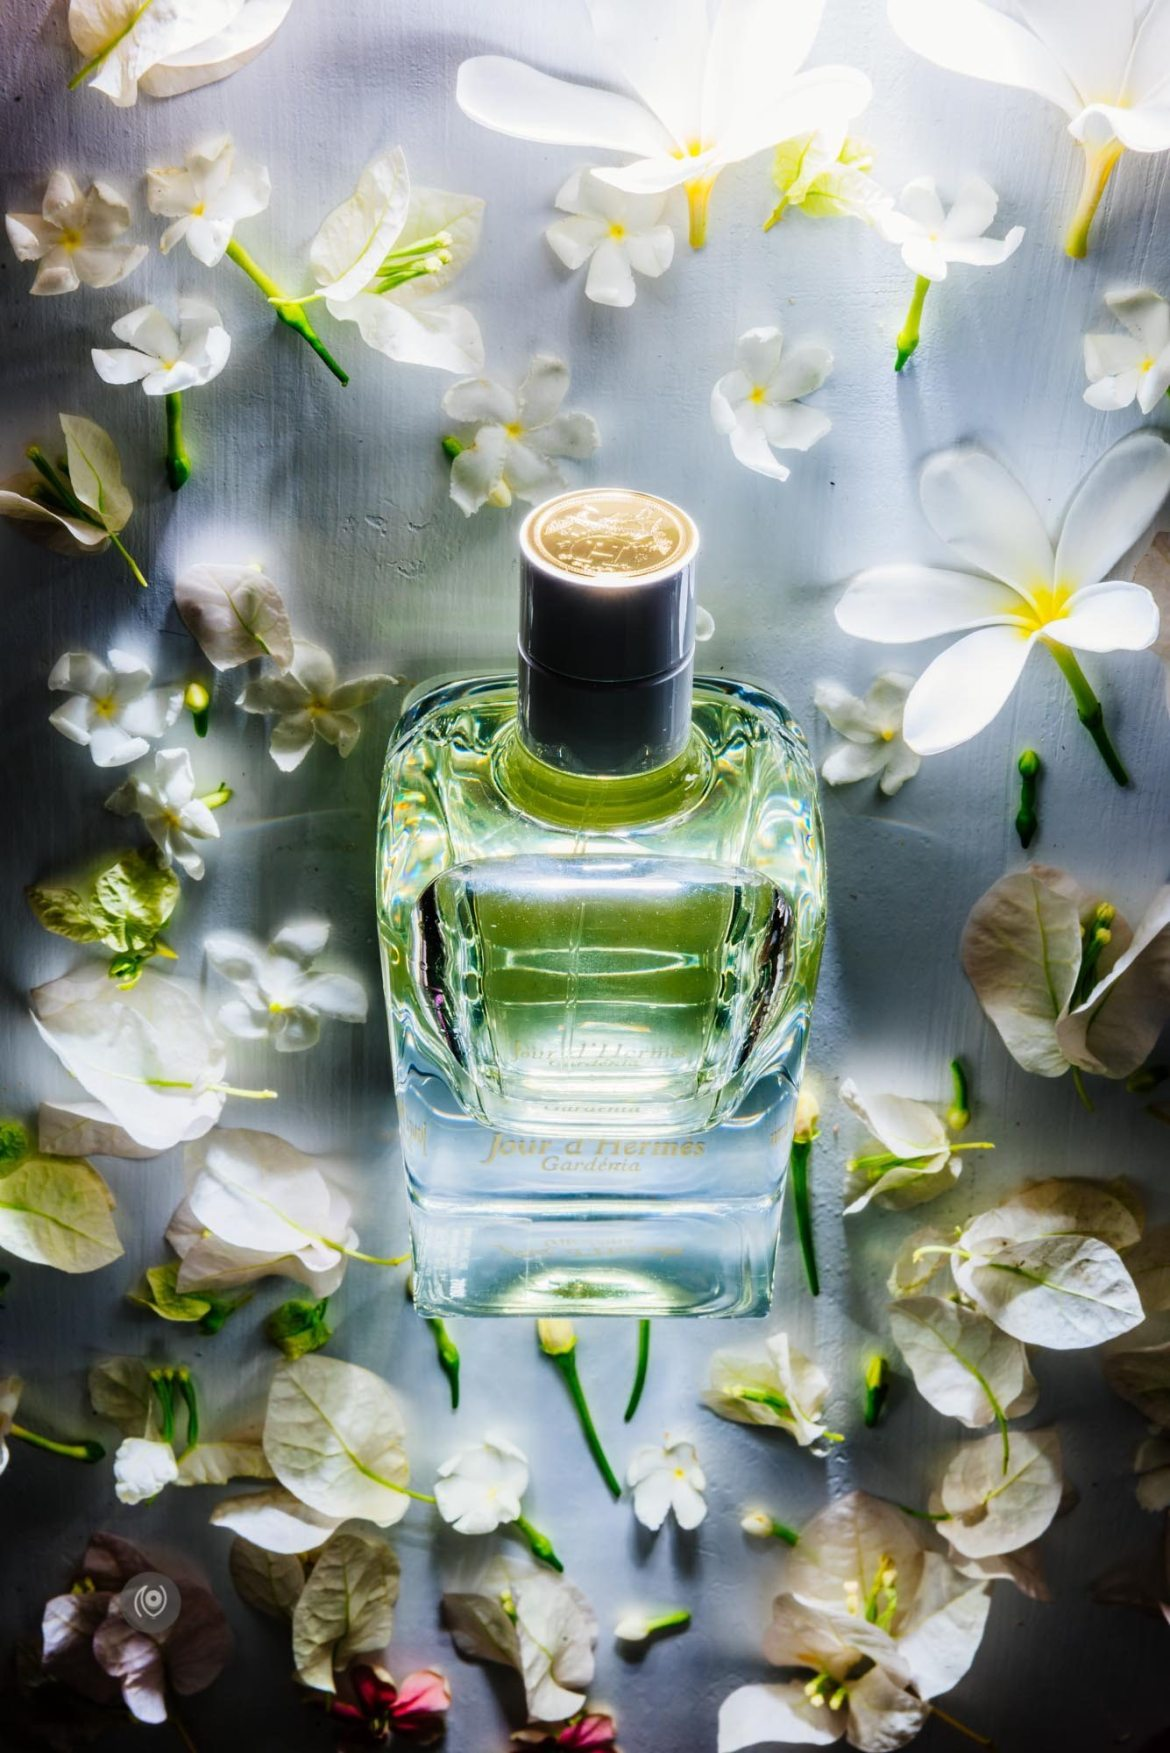 FragranceOfTheMonth-Naina.co-Jour-Hermes-Gardenia-EyesForLuxury-14